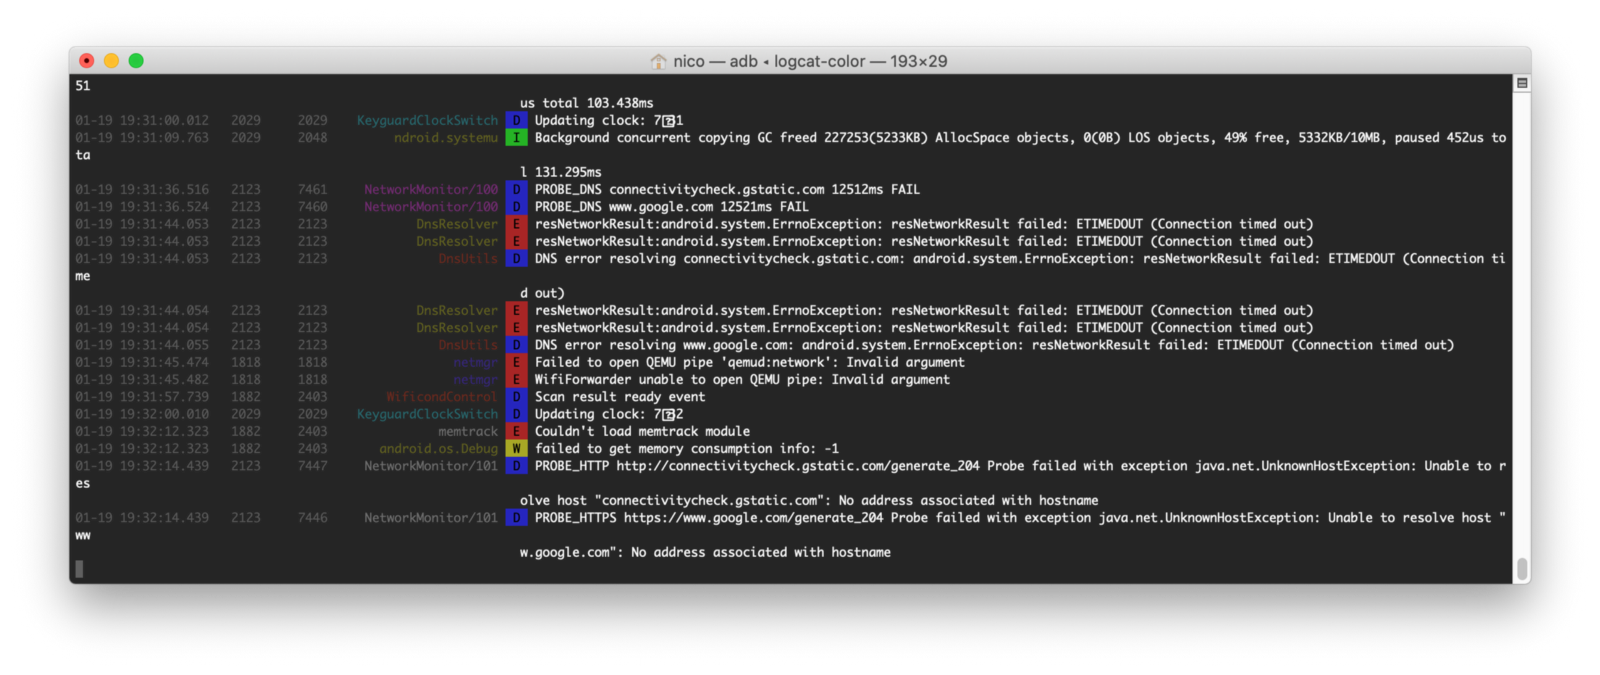 Screen capture of a logcat-color terminal